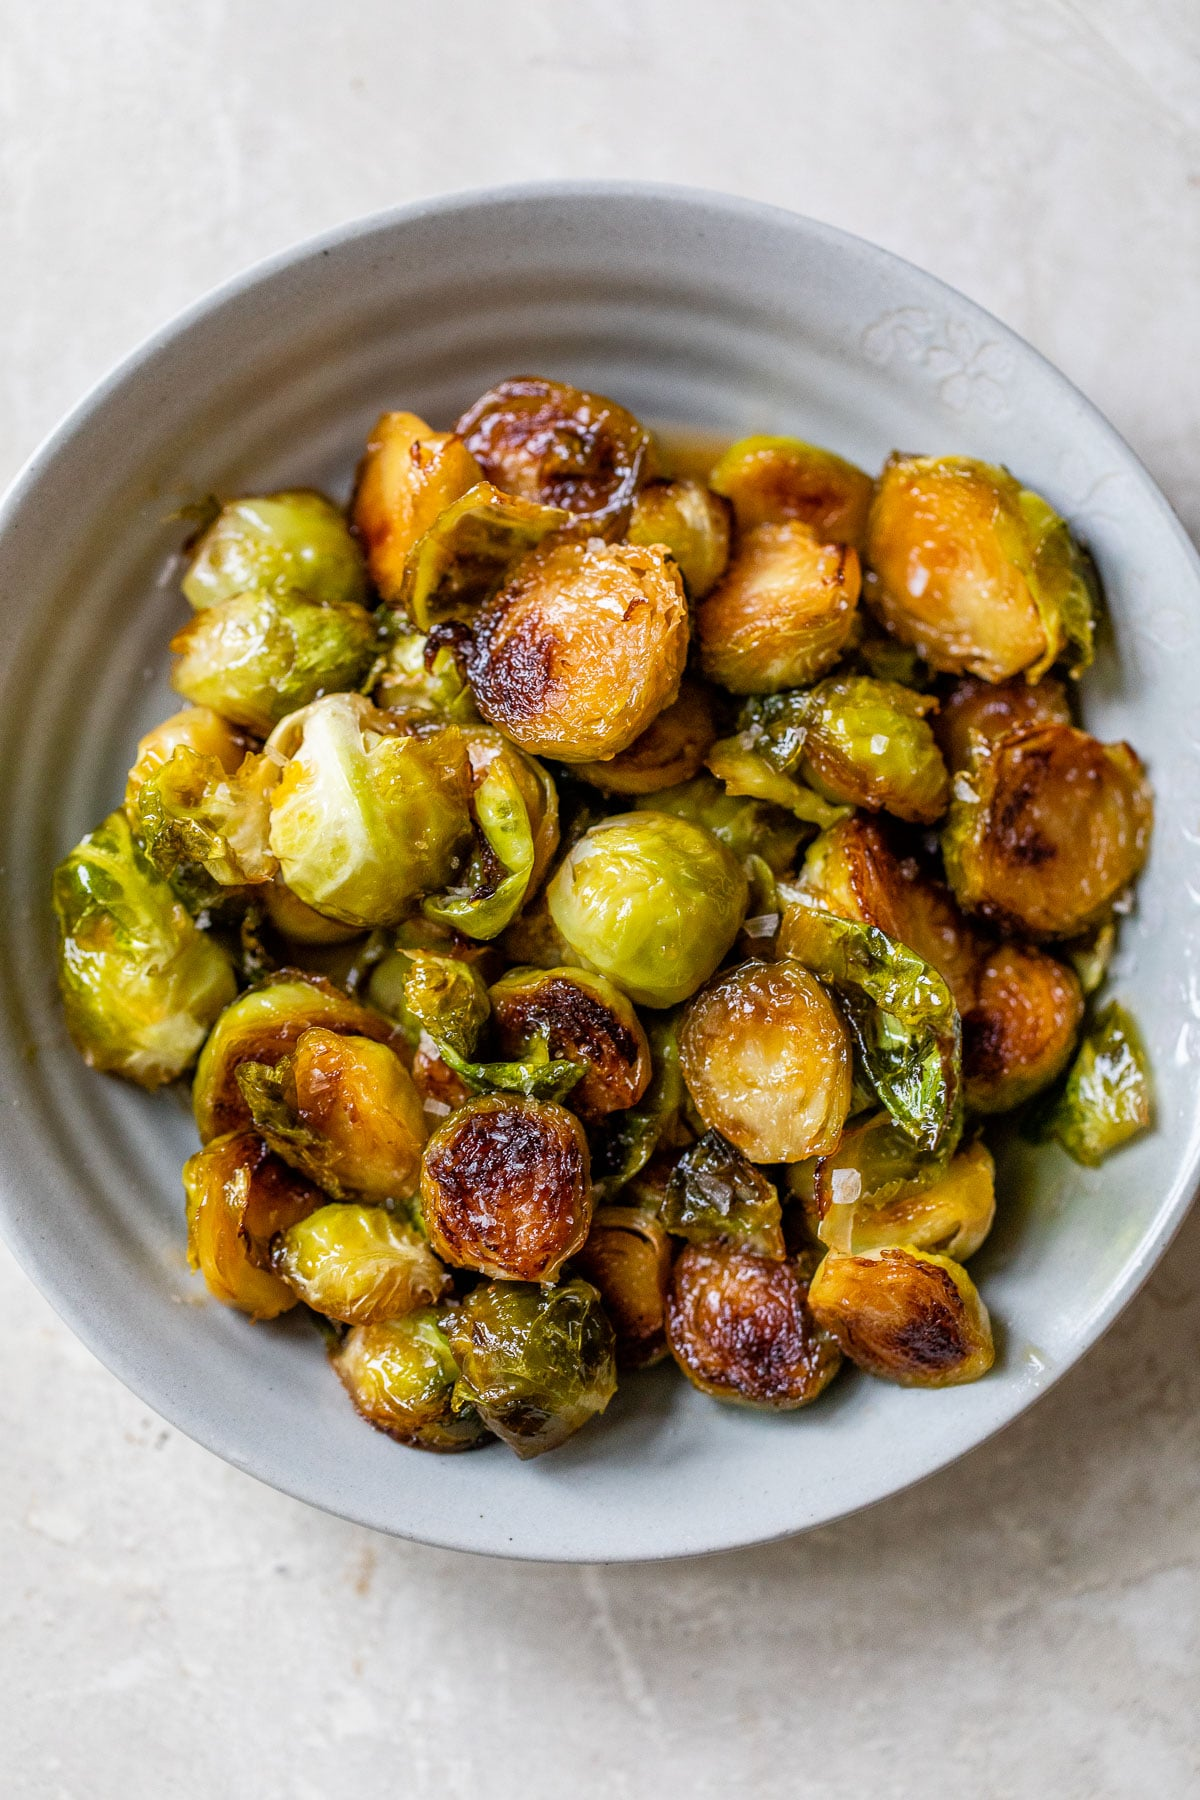 bowl of cooked brussels sprouts